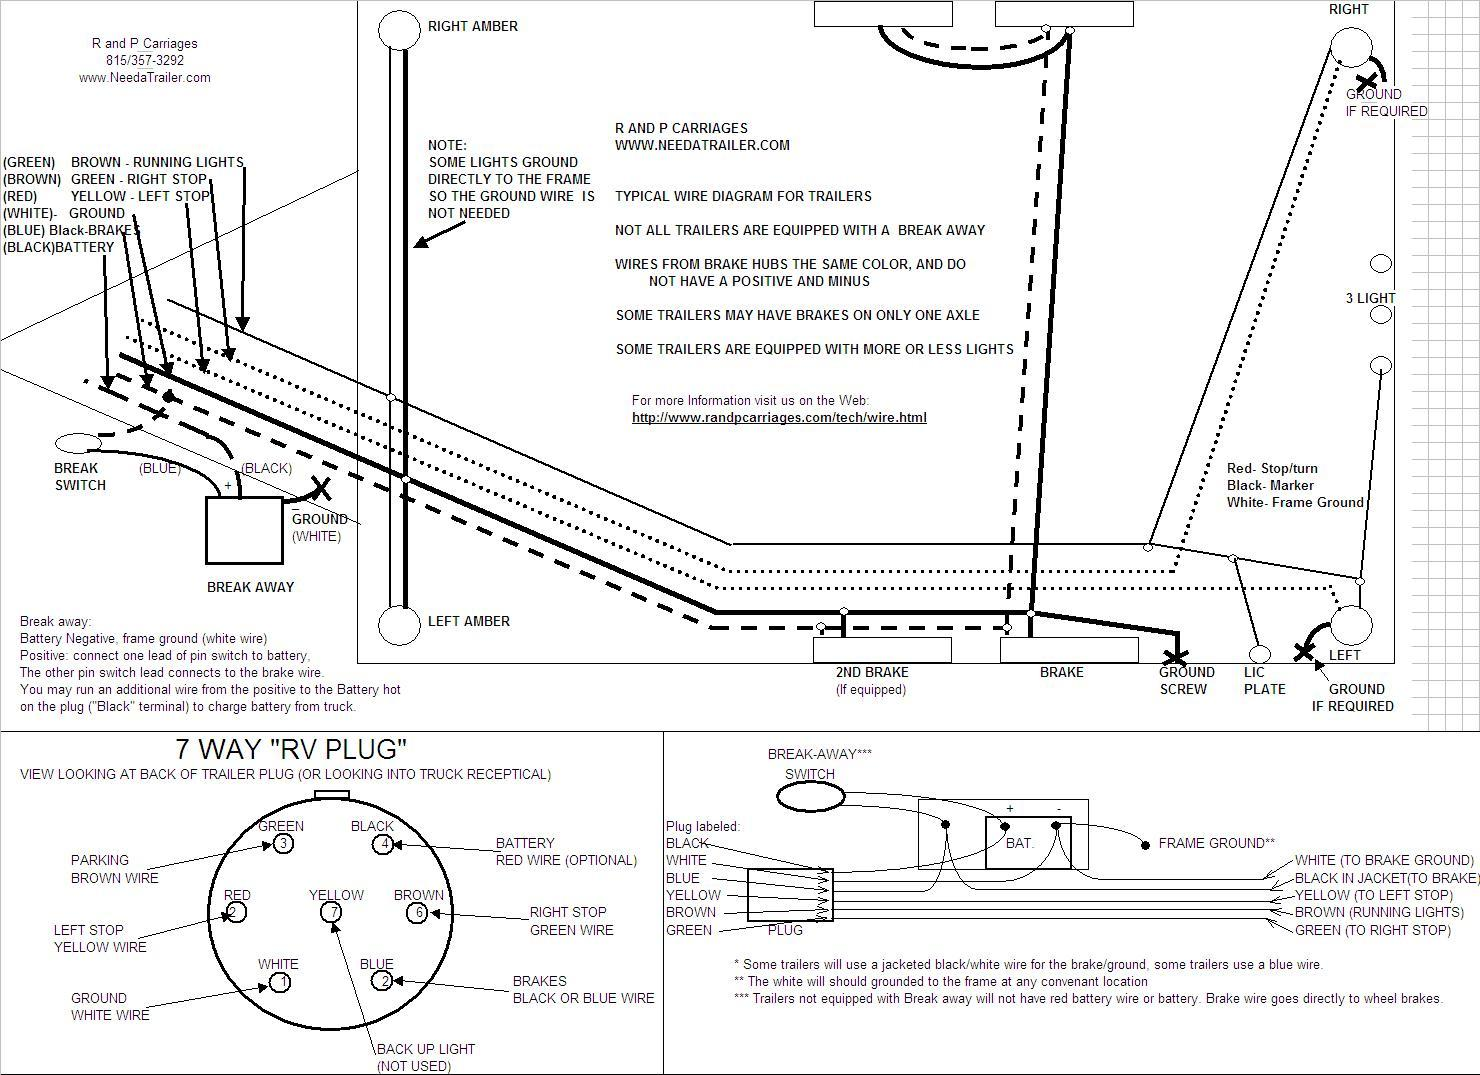 7 way wiring diagram brake controller installation instructions truck to trailer wiring diagram at soozxer.org